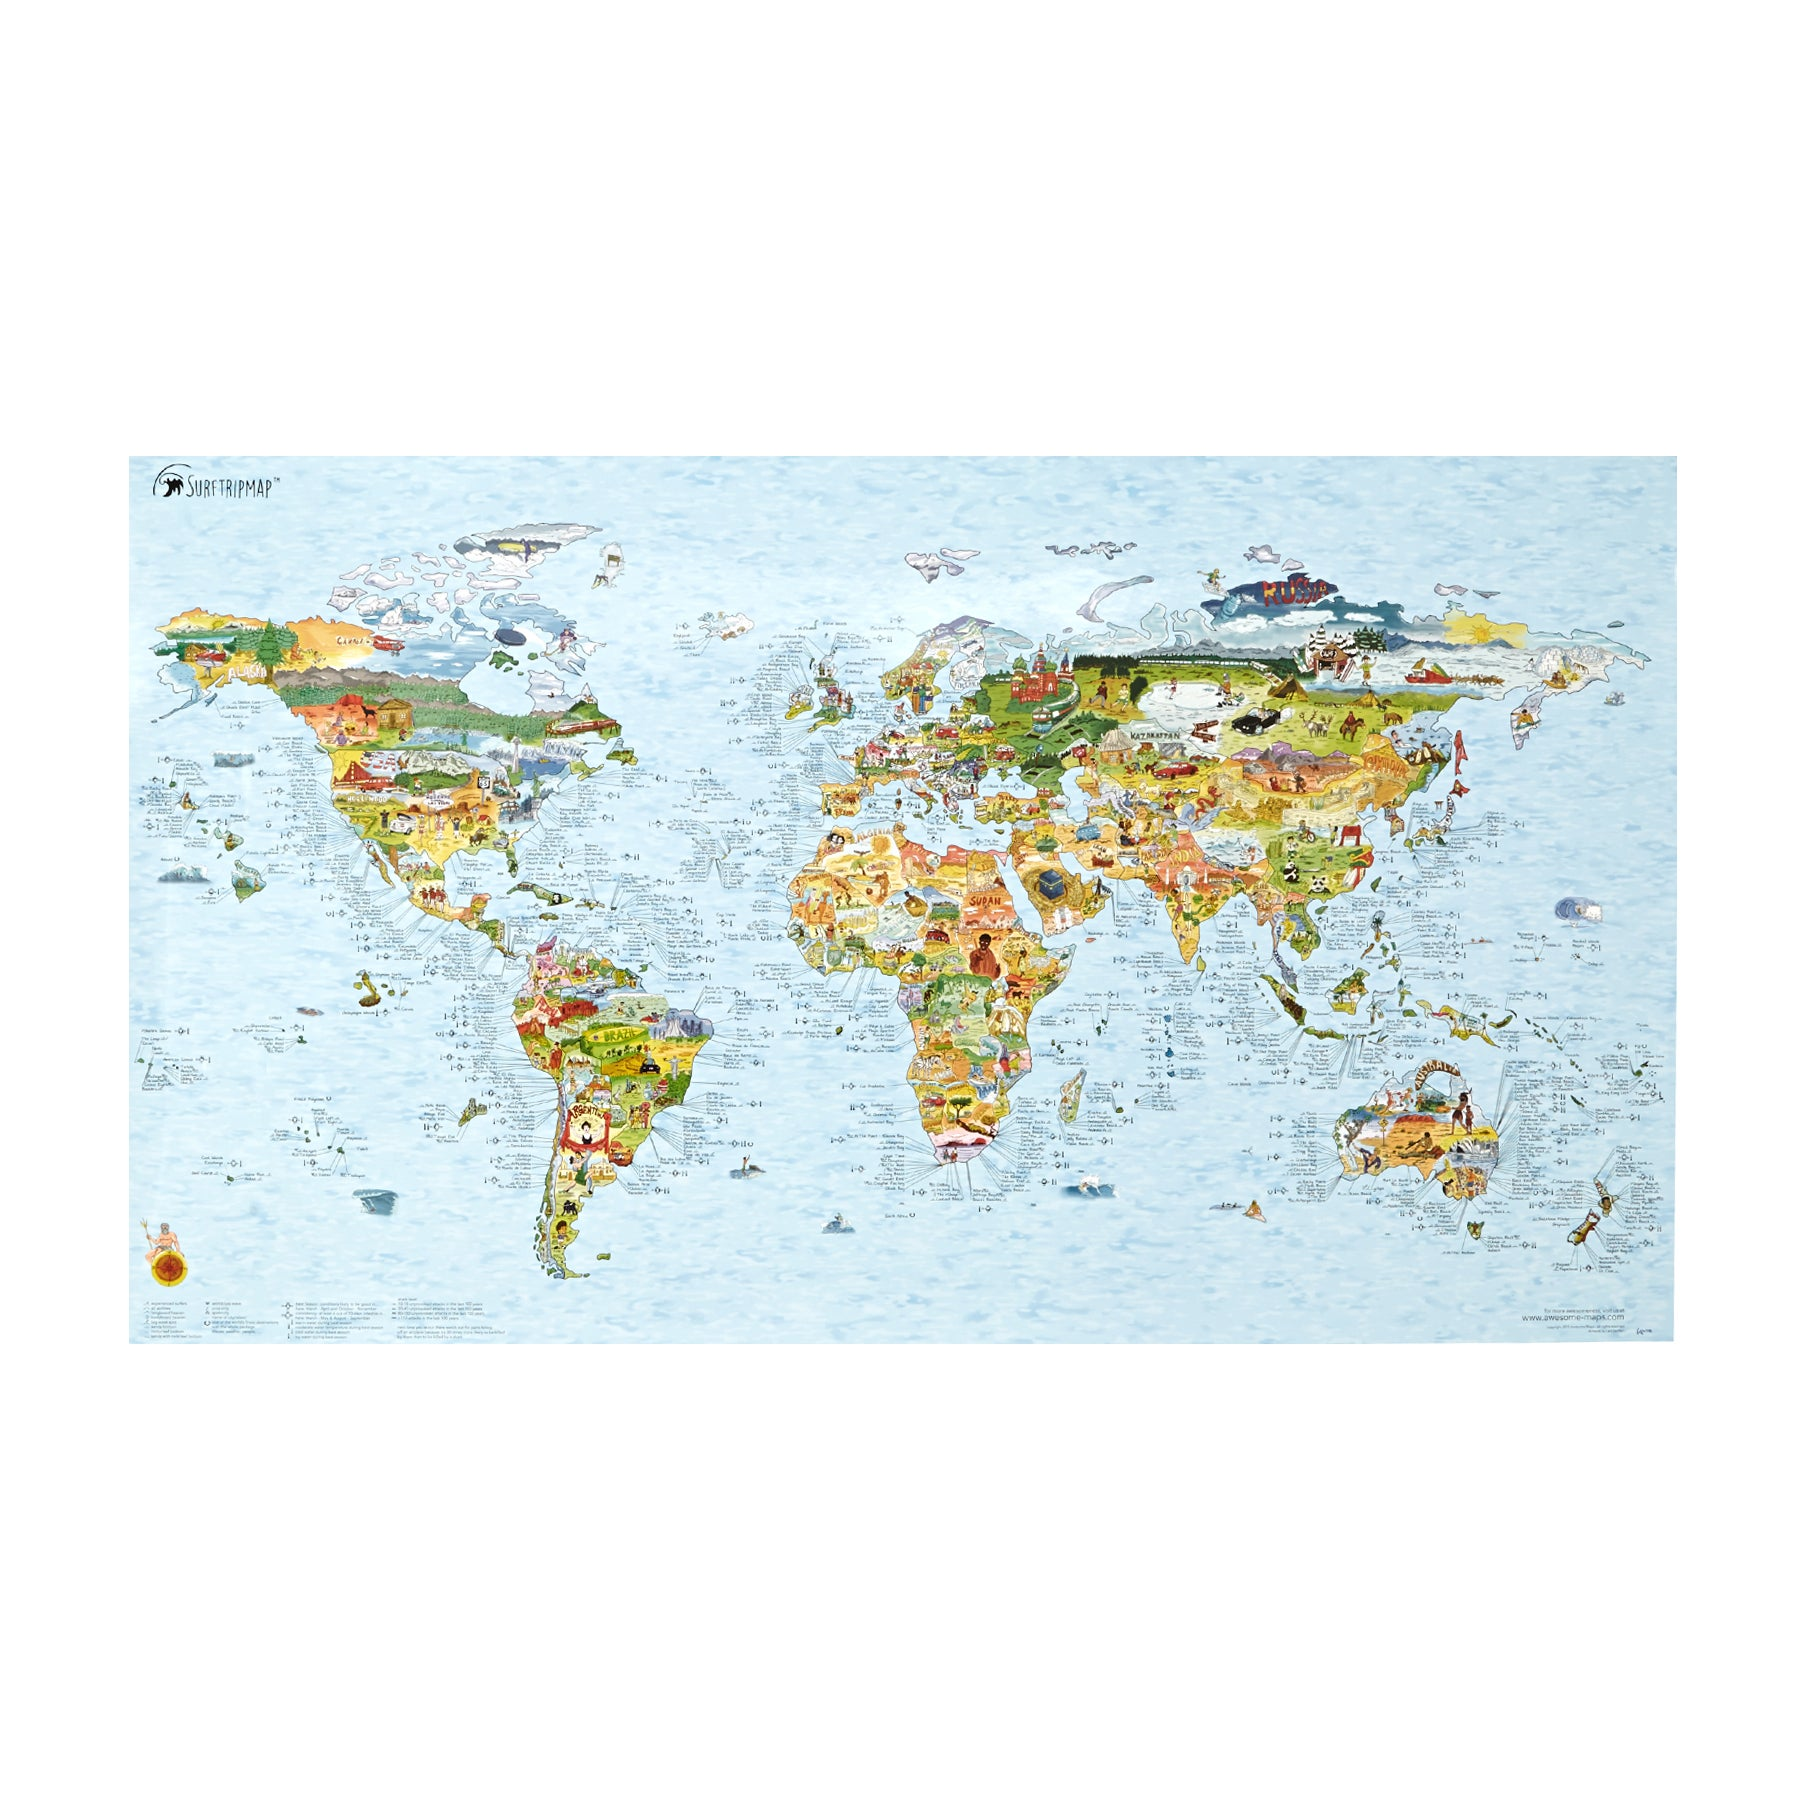 Surf Accessory Awesome Maps World Surf Map - Multi